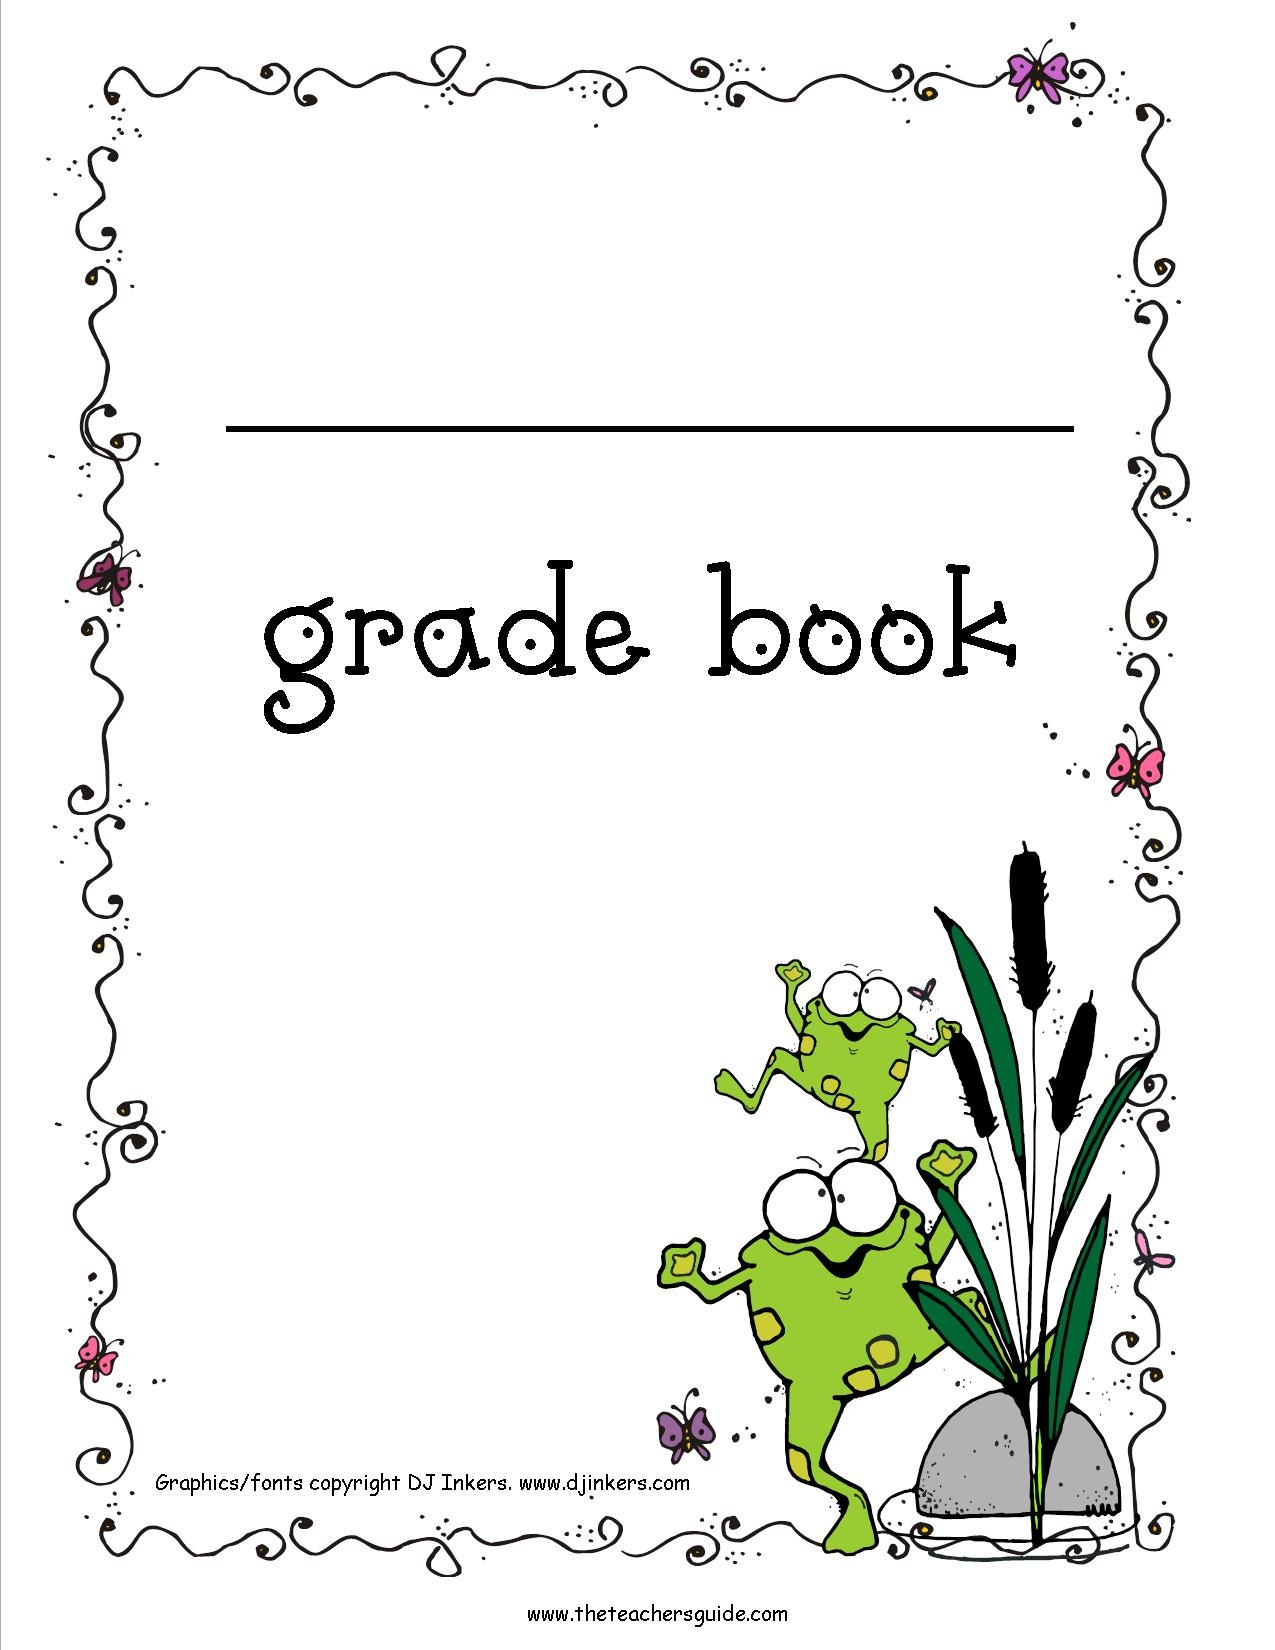 Free Printable Grade Books - Free Printable Gradebook Sheets For Teachers